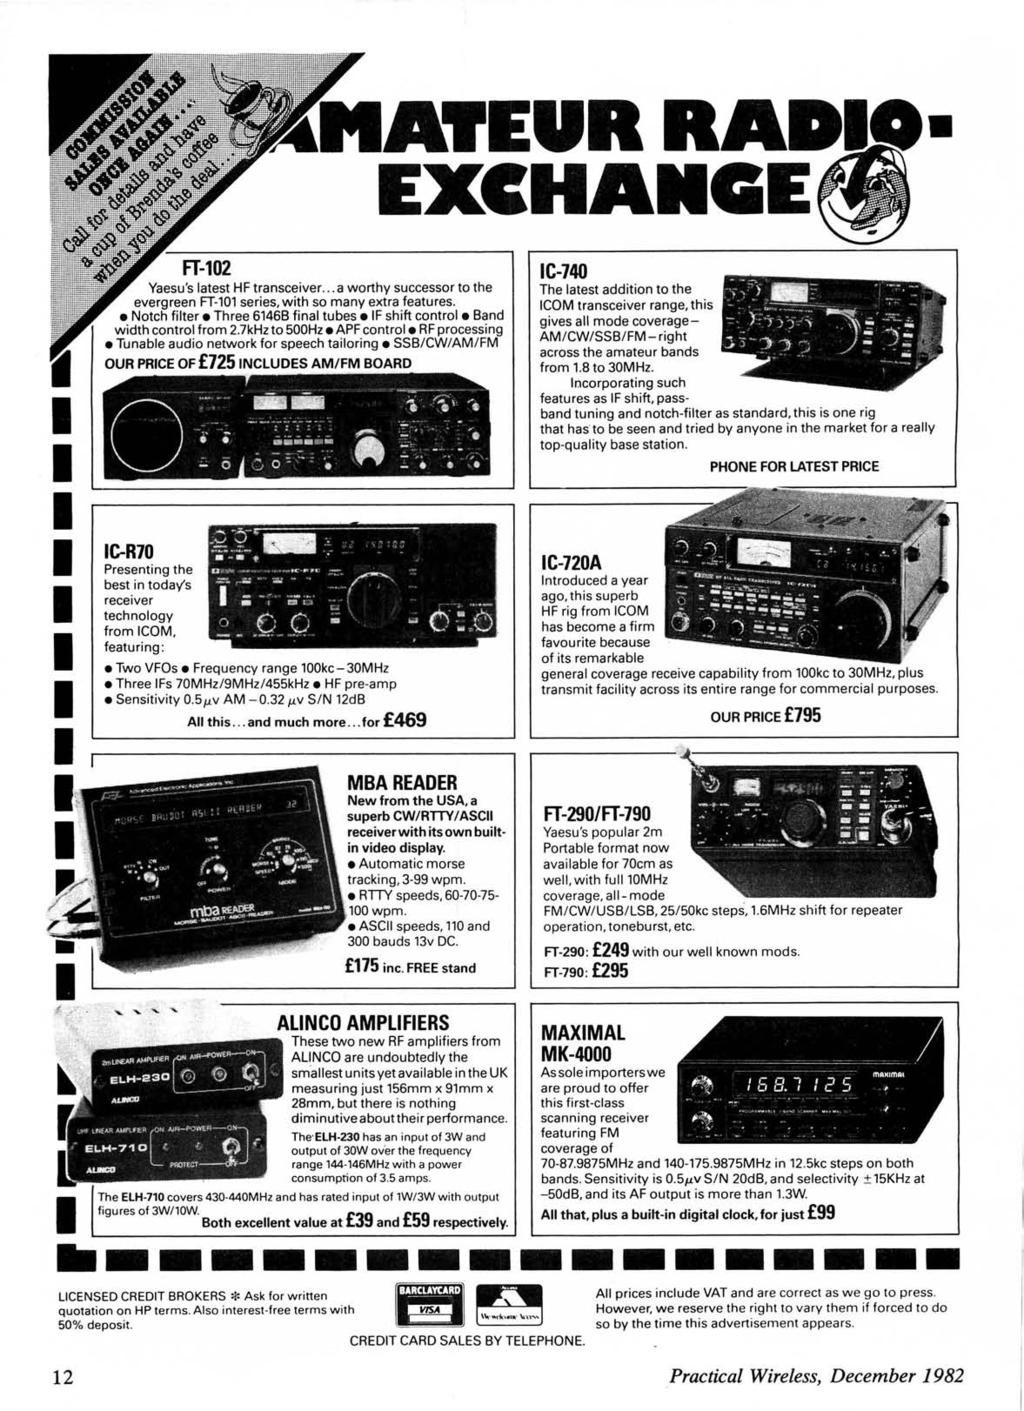 Also Add On Squelch Happy 60th Birthday Auntln Competition Win Twoband Ptb Tone Control Useful Easy Cheap Awesome Eurrad Exchage Yaesu S Latest Hf Transceiver A Worthy Successor